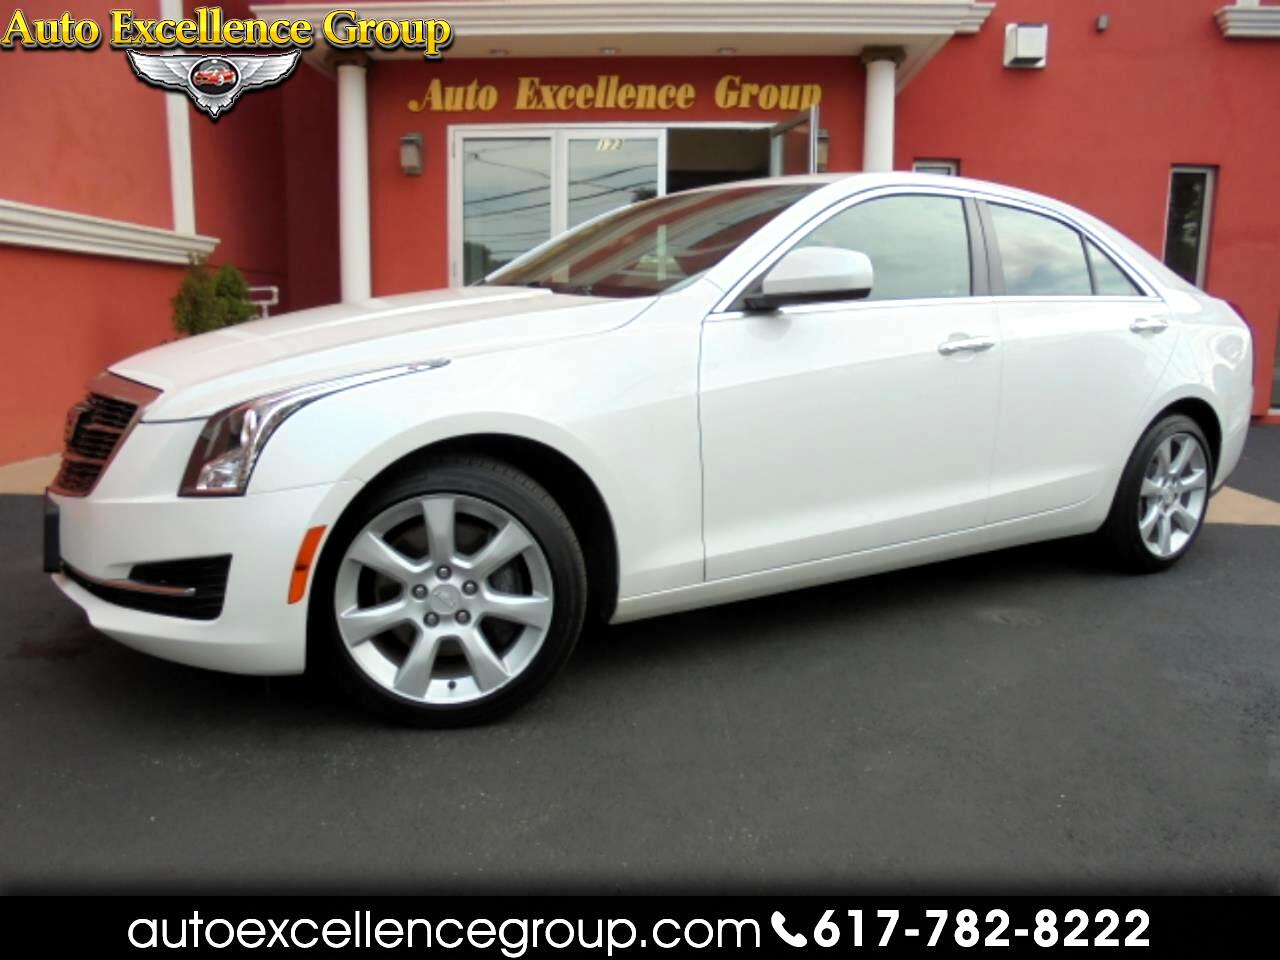 used cadillac ats for sale near everett ma carsgenius com cars for sale carsgenius